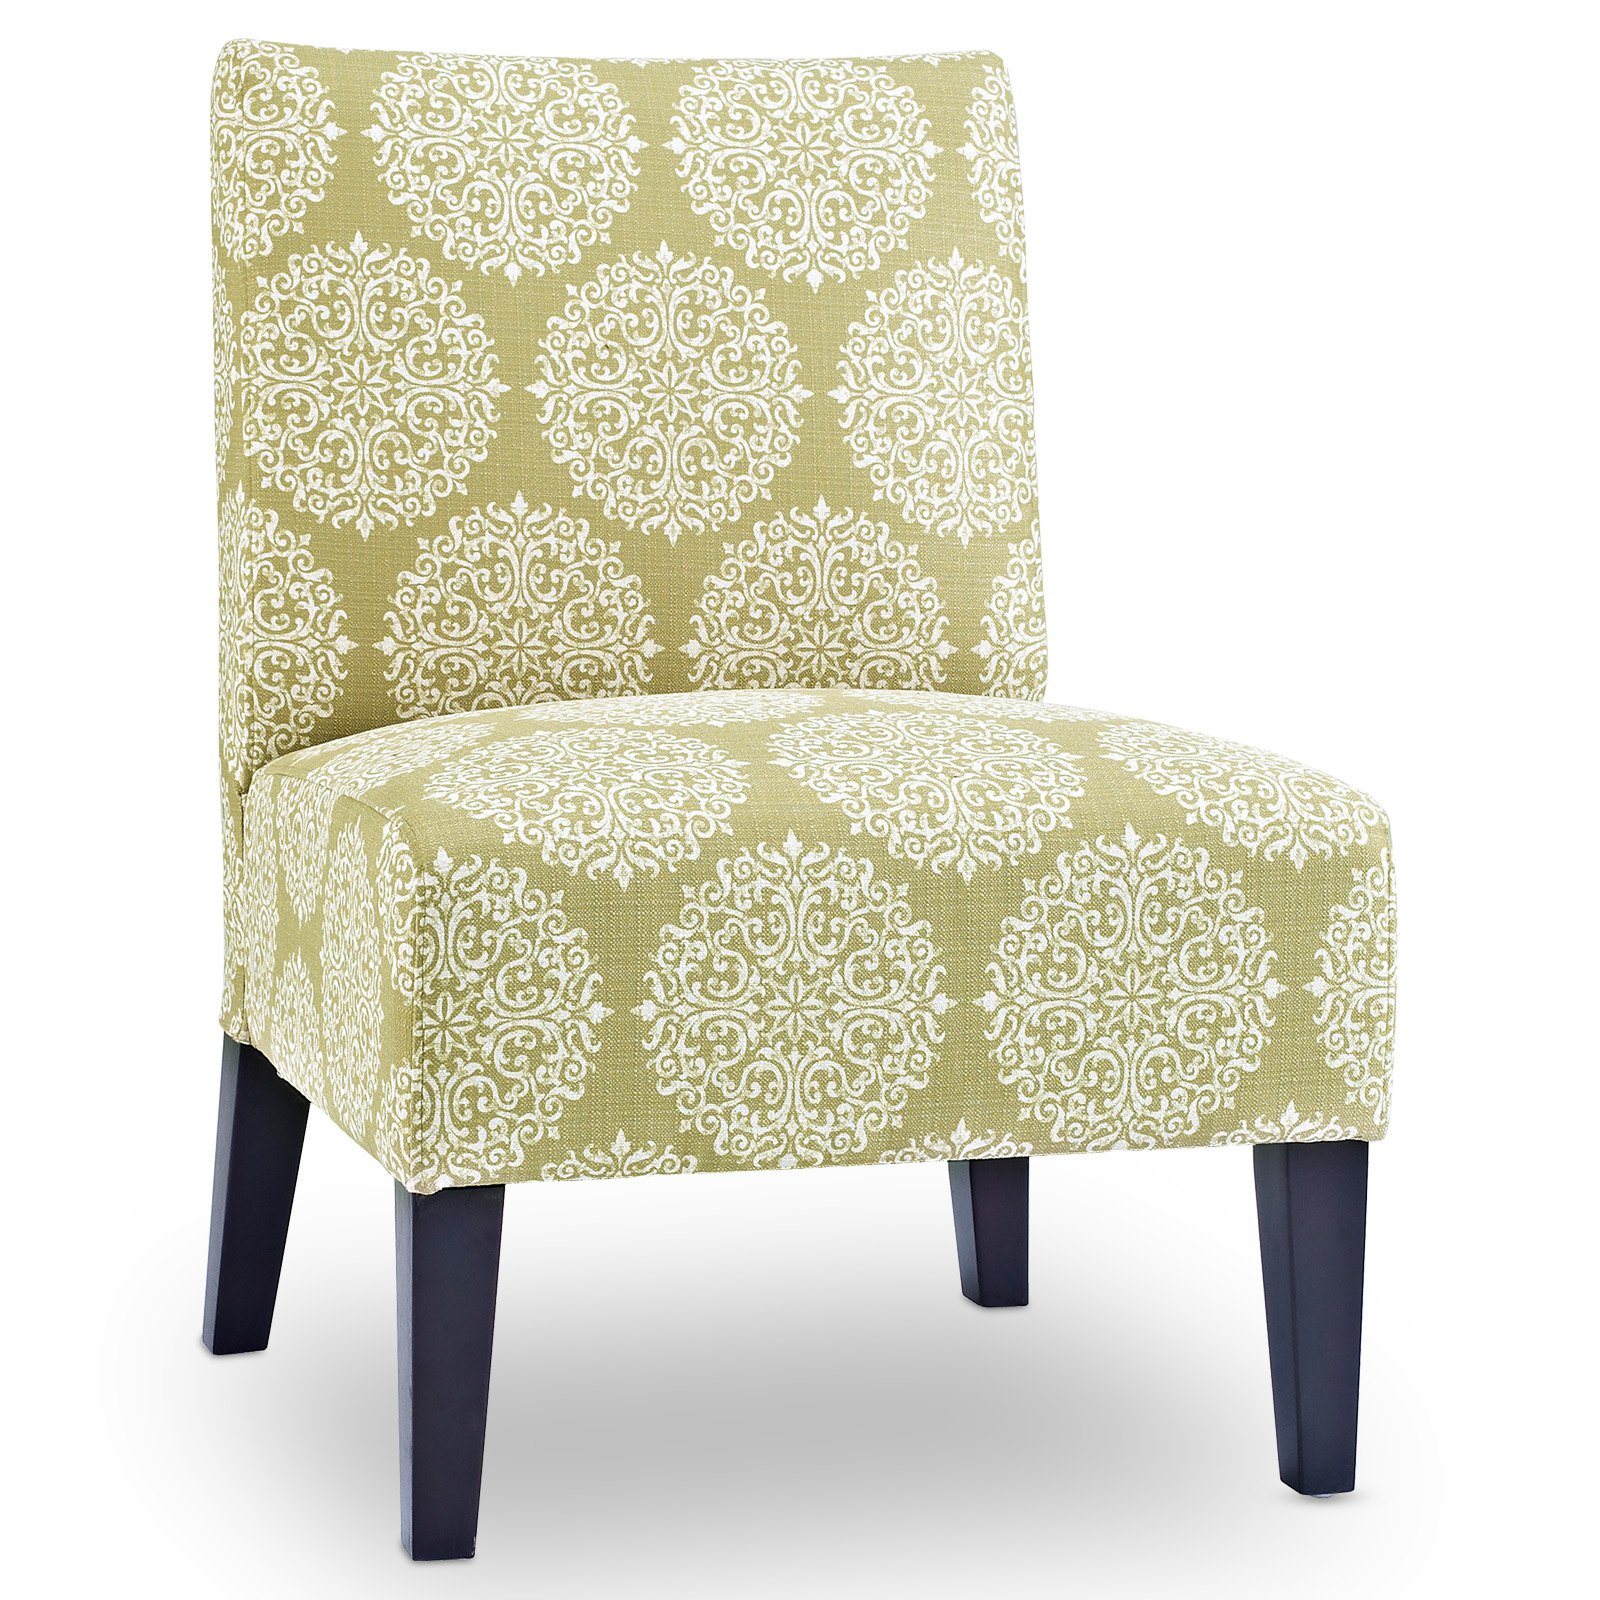 unique accent chairs beach uk argos monaco chair gabrielle pearl in 2019 products moss